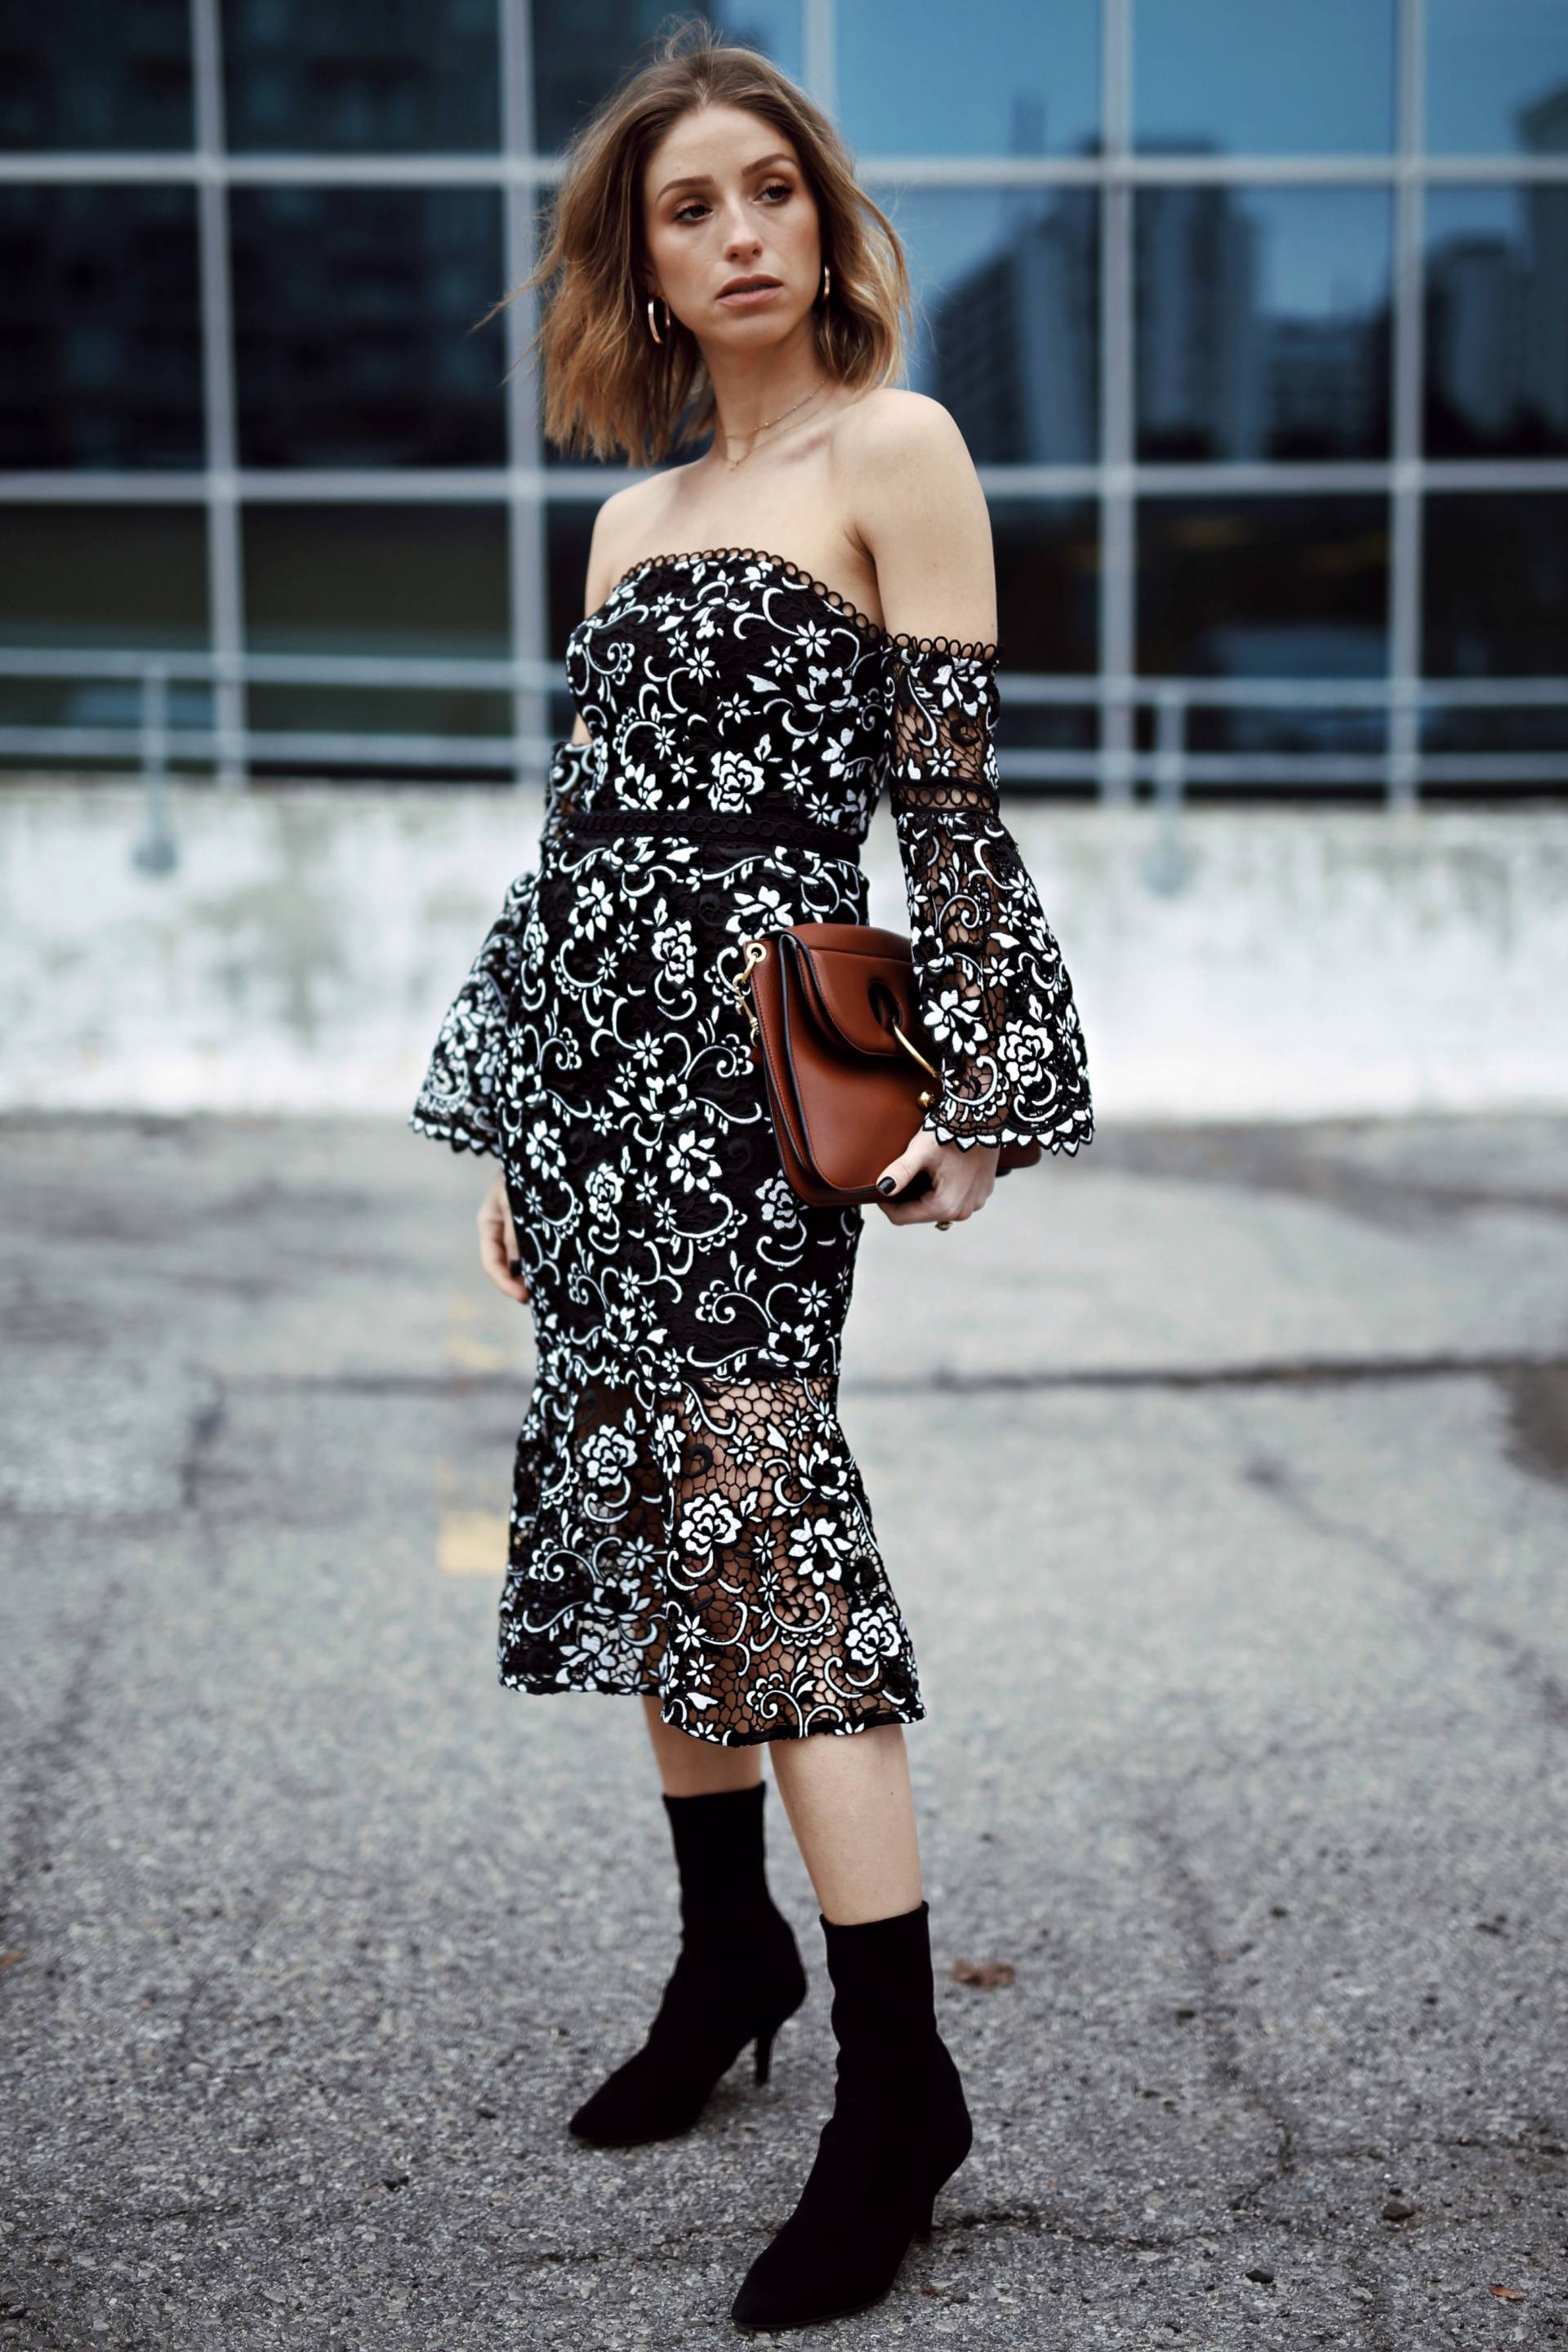 Style and beauty blogger Jill Lansky of the August Diaries on 5 ways to toughen up a dress